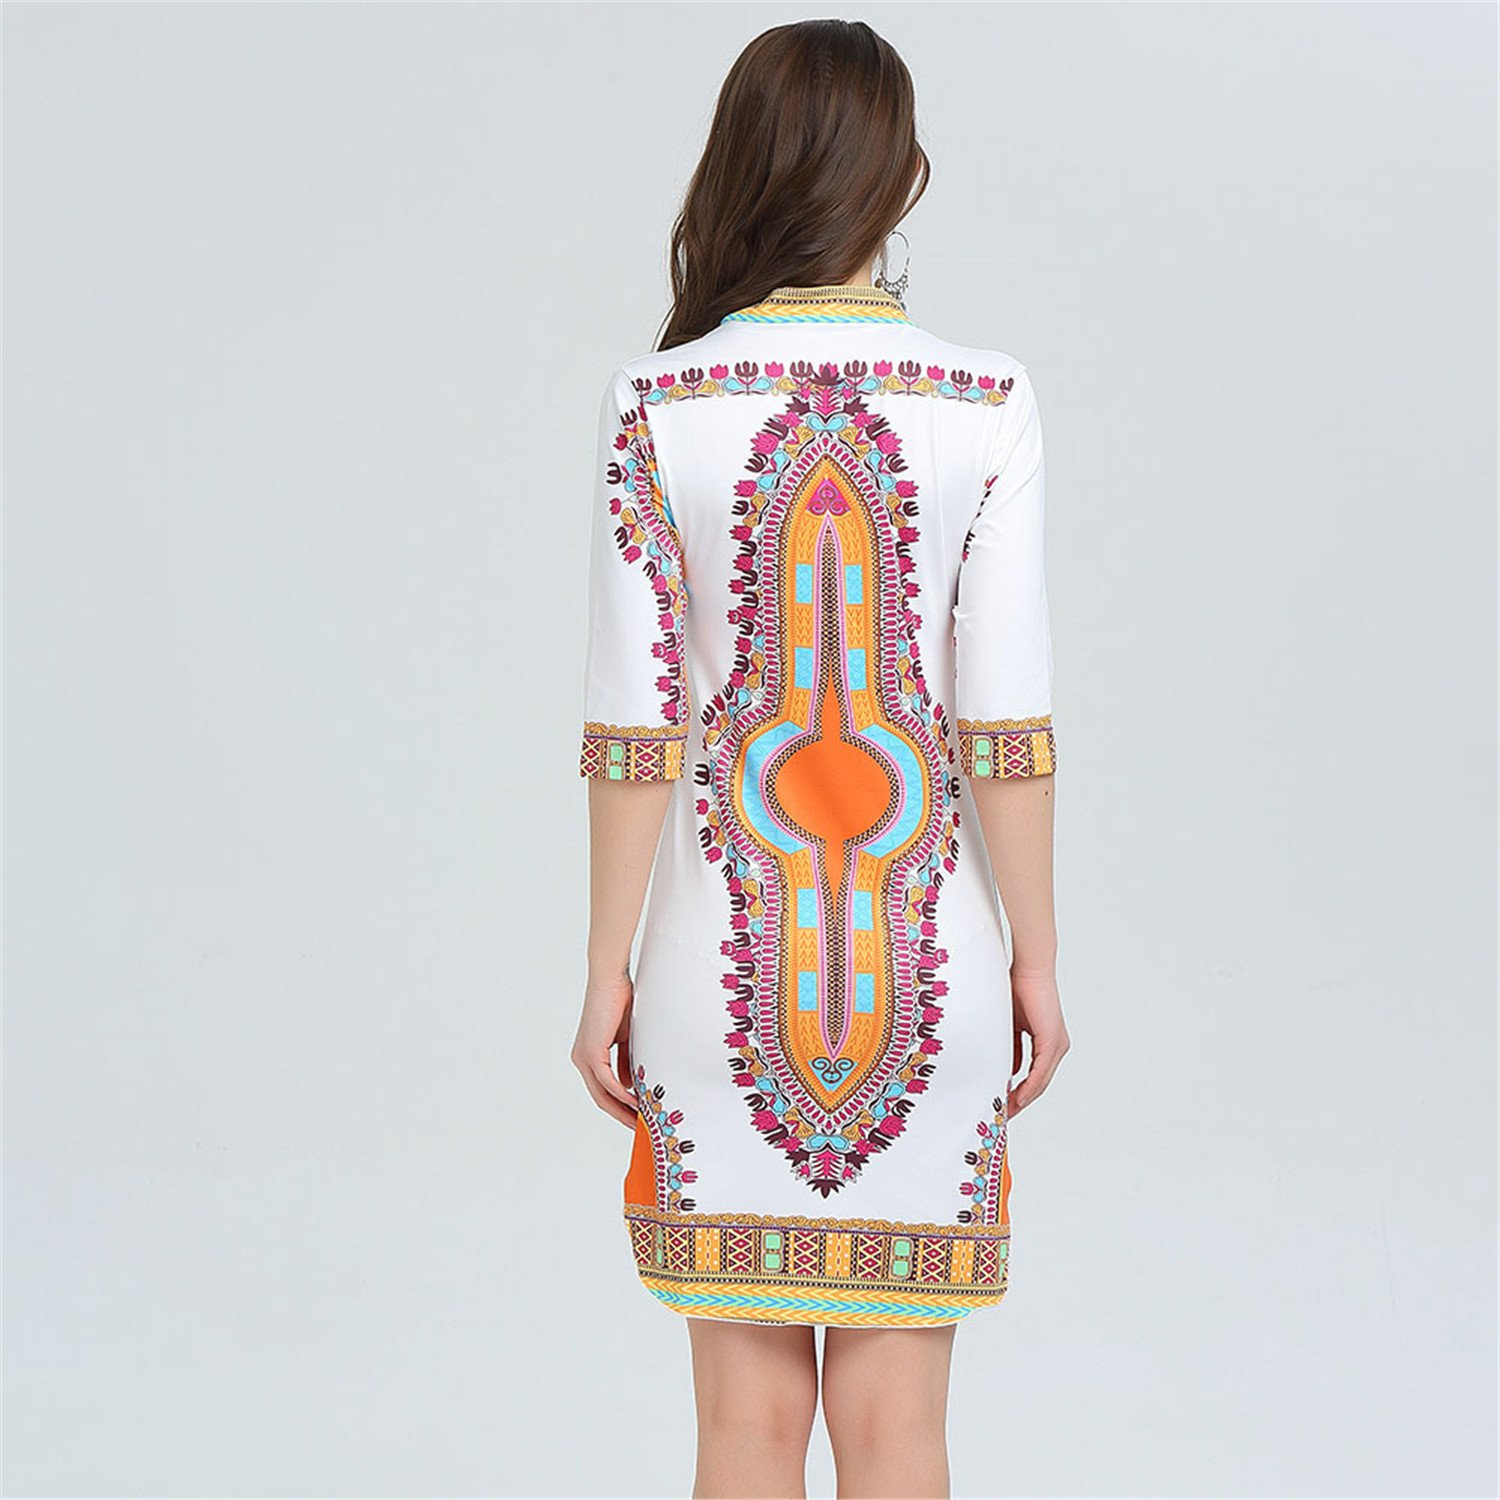 afea7f8a56e nboba 3XL Plus Size Wholesale African Clothes Dress for Women Casual Summer  Hippie Print Fabric Femme Boho Robe Femme at Amazon Women s Clothing store